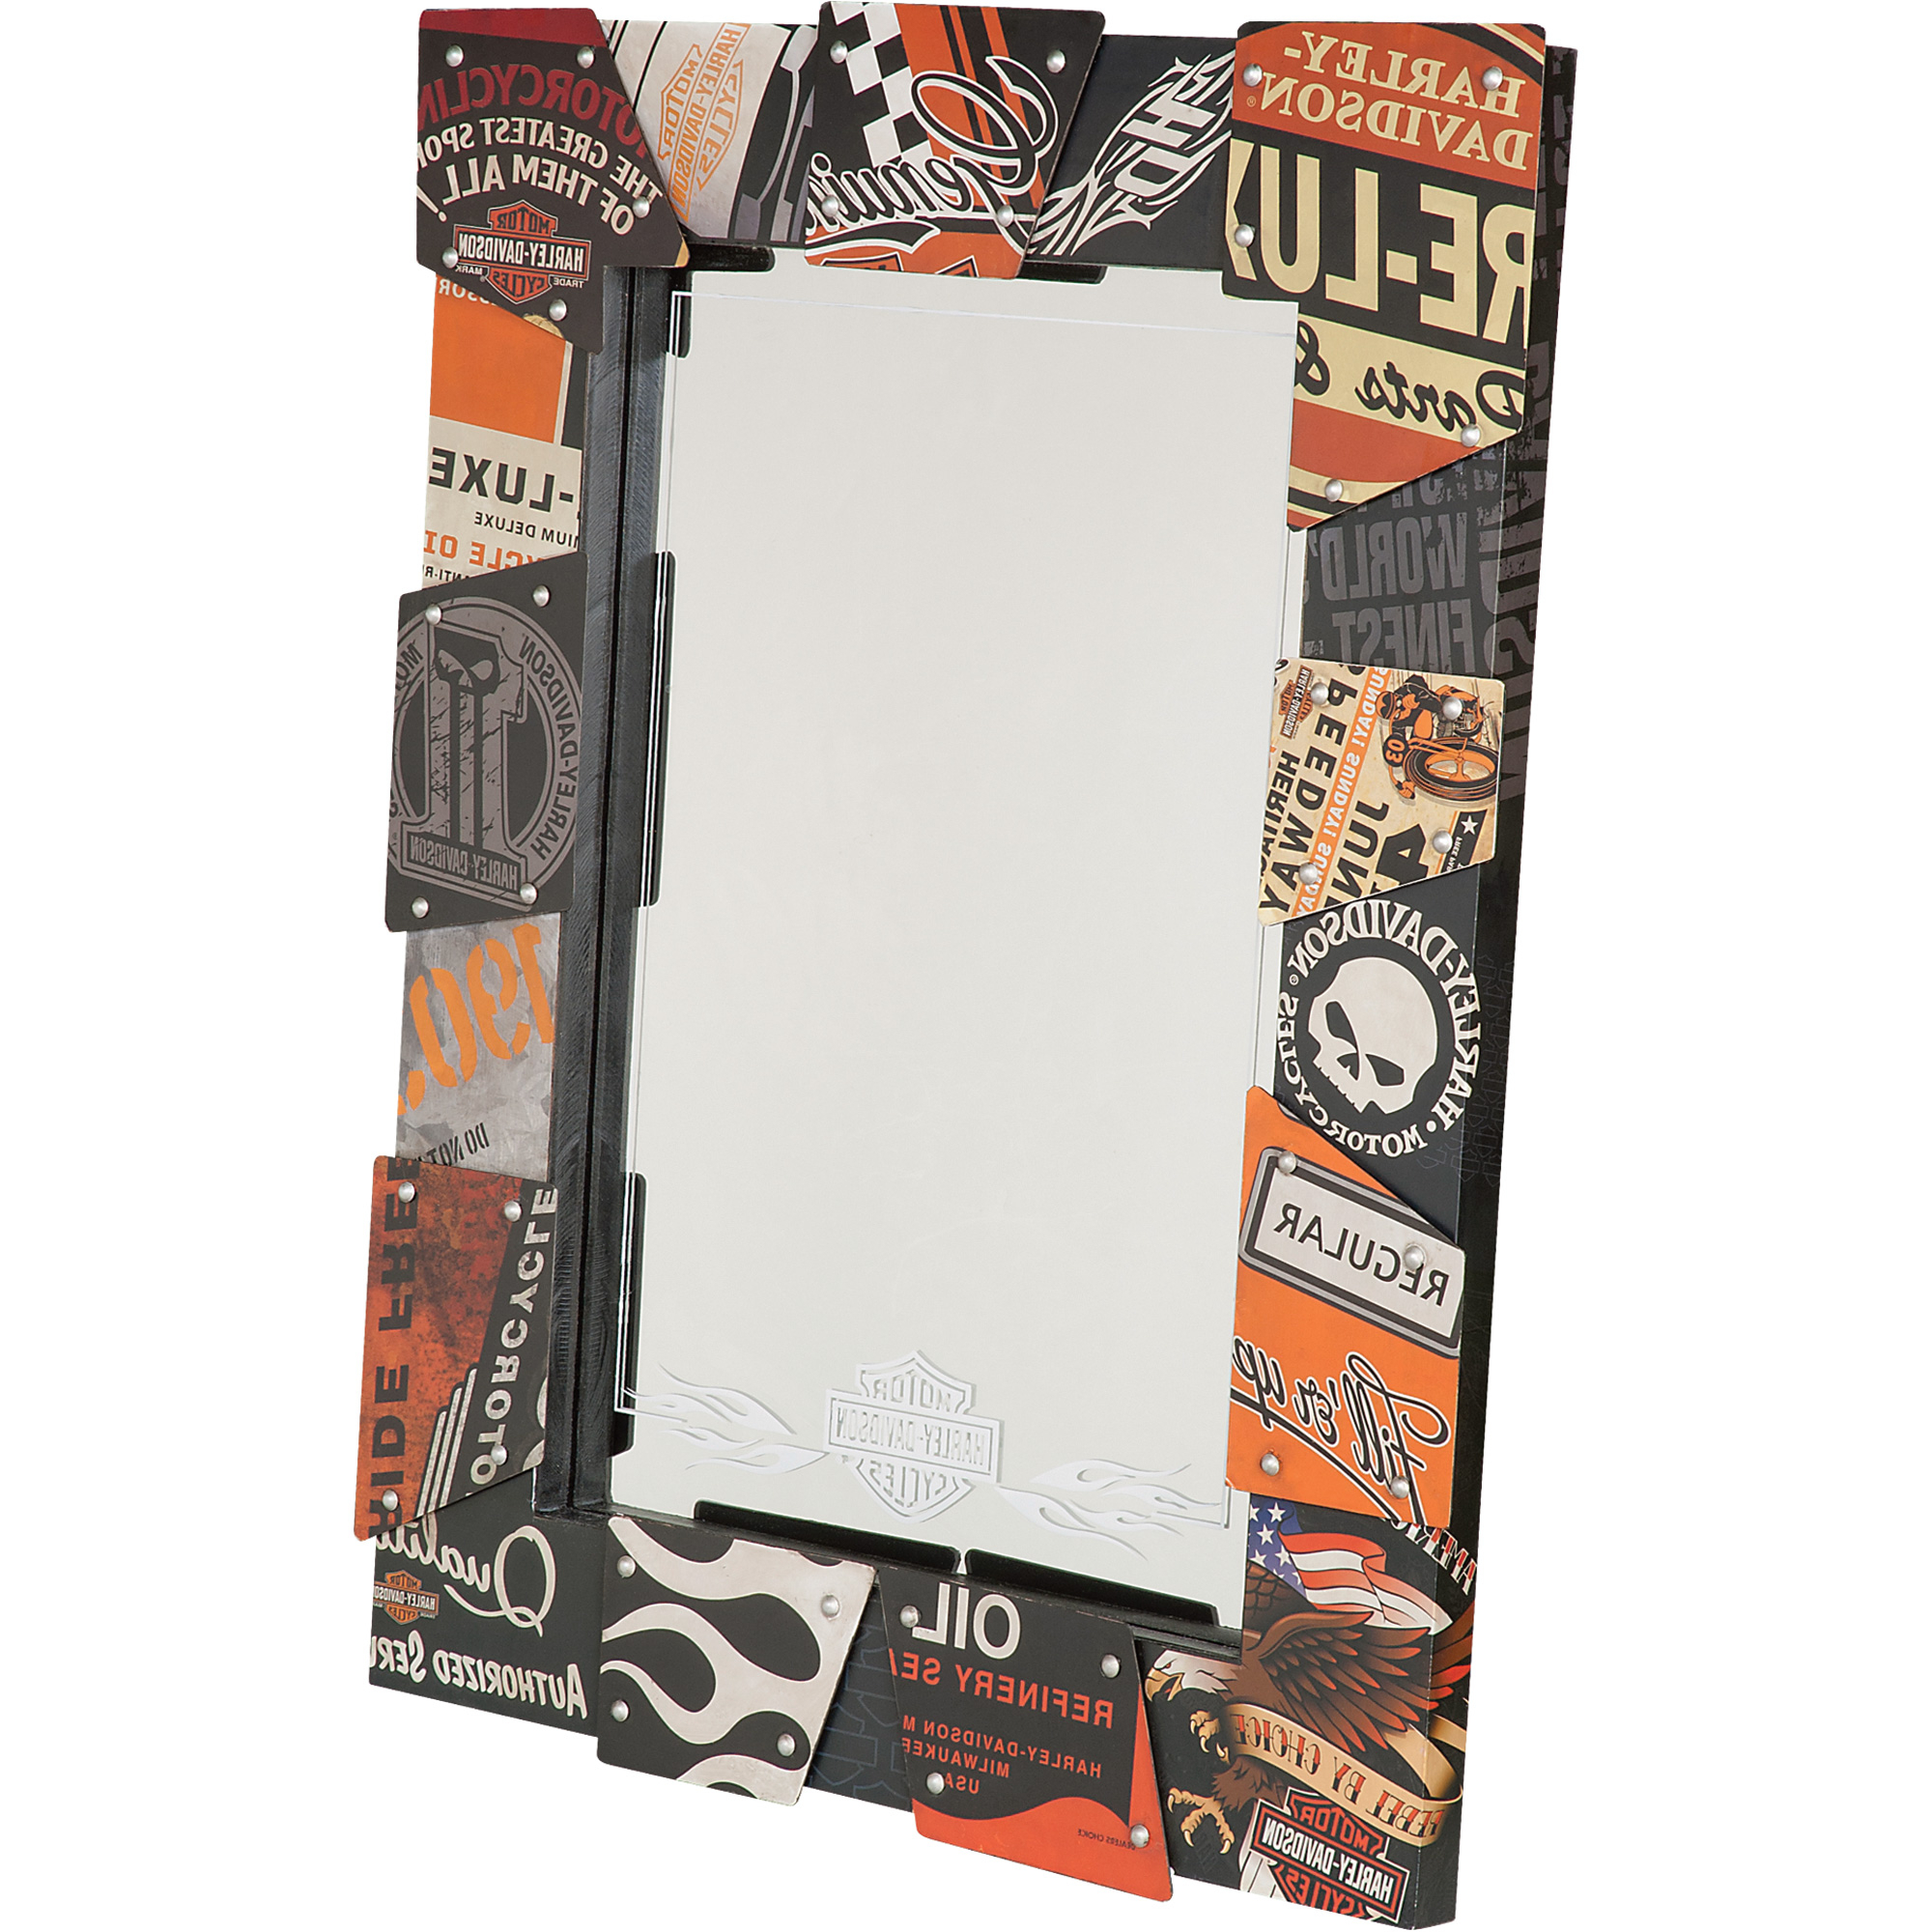 Harley Davidson Wall Mirrors – Mirror Ideas Pertaining To Newest Harley Davidson Wall Mirrors (Gallery 9 of 20)